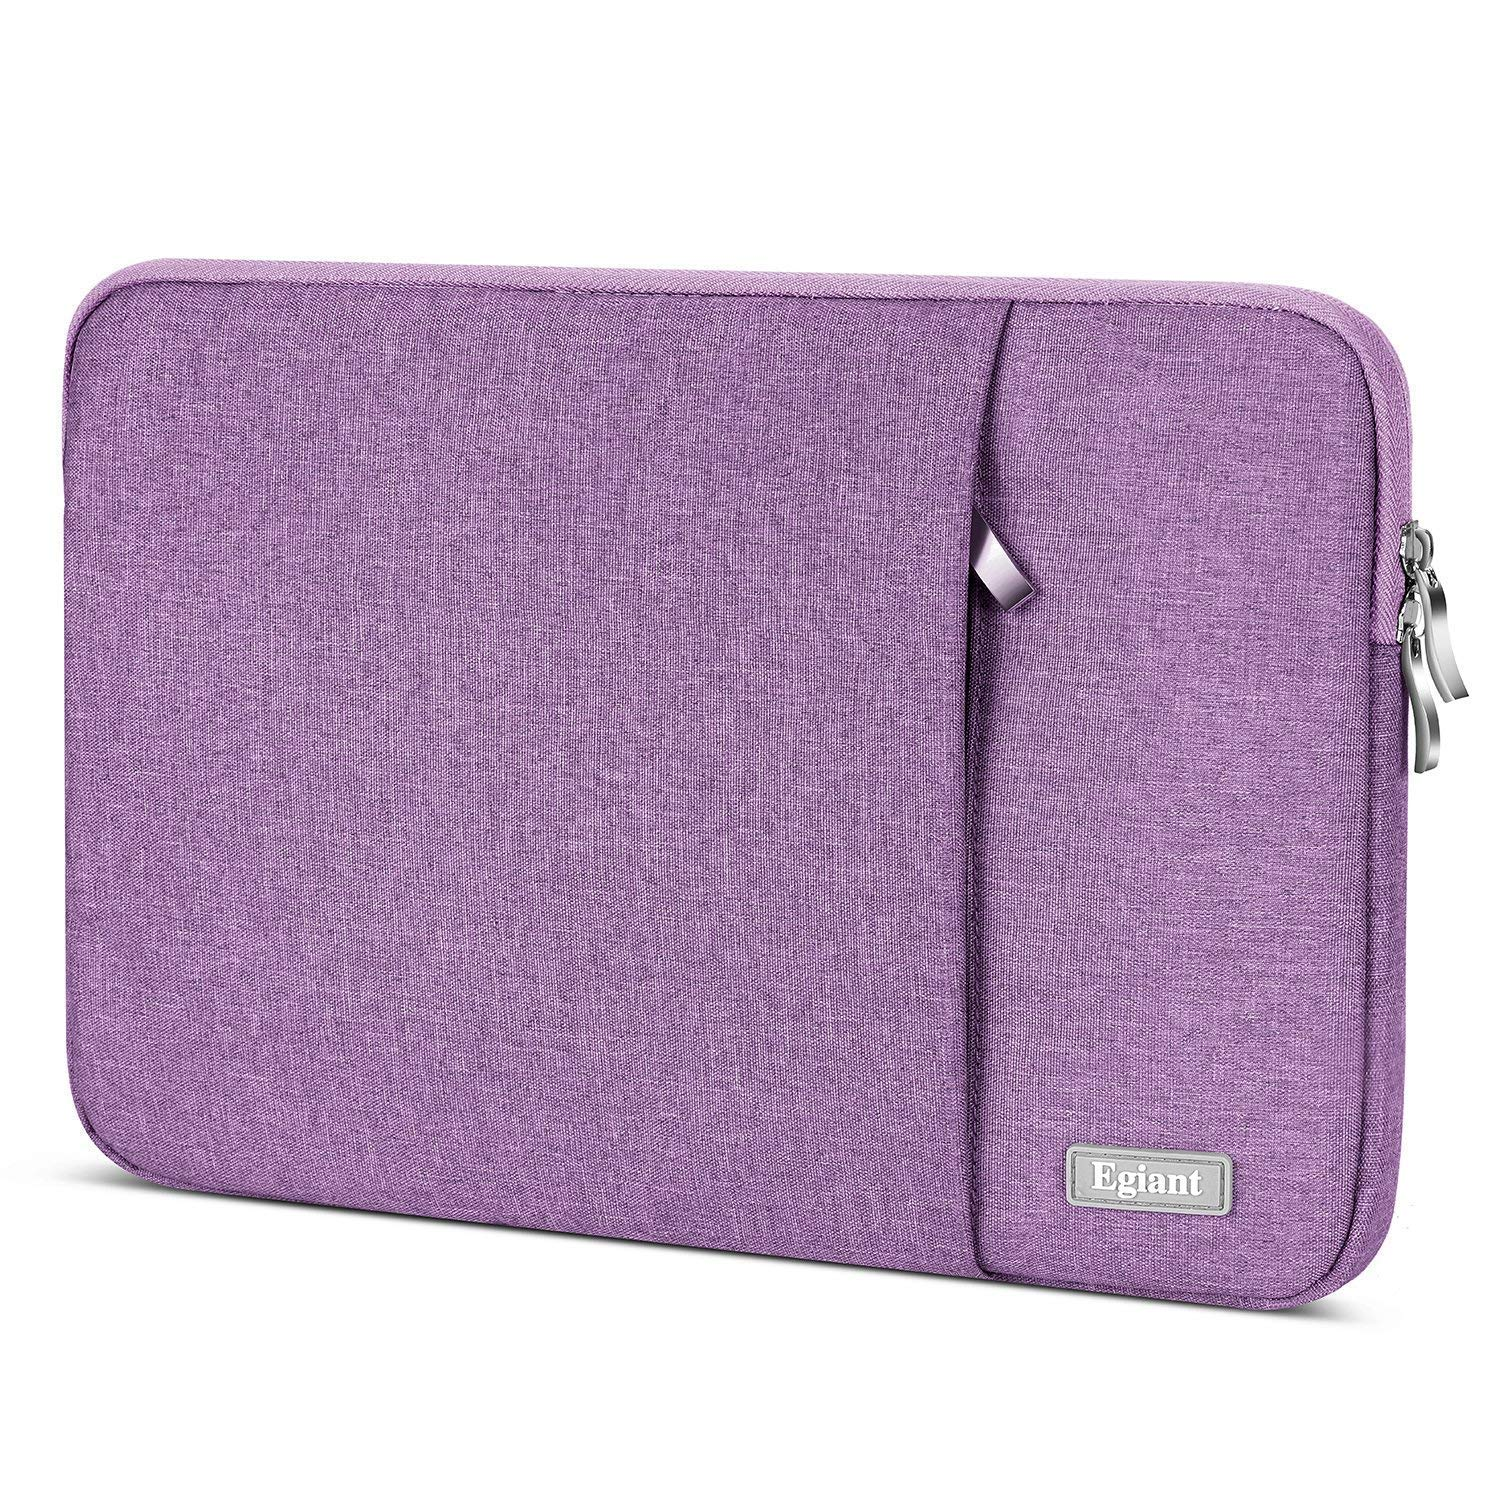 "Laptop Sleeve Case 13.3 inch,Egiant Waterproof Protective Fabric Bag Compatible Mac Pro 13 Retina|Mac Air 13|Surface Book|Stream 13|Chromebook 13,12.5-13"" Chromebook Computers Notebook Cover-Purple"